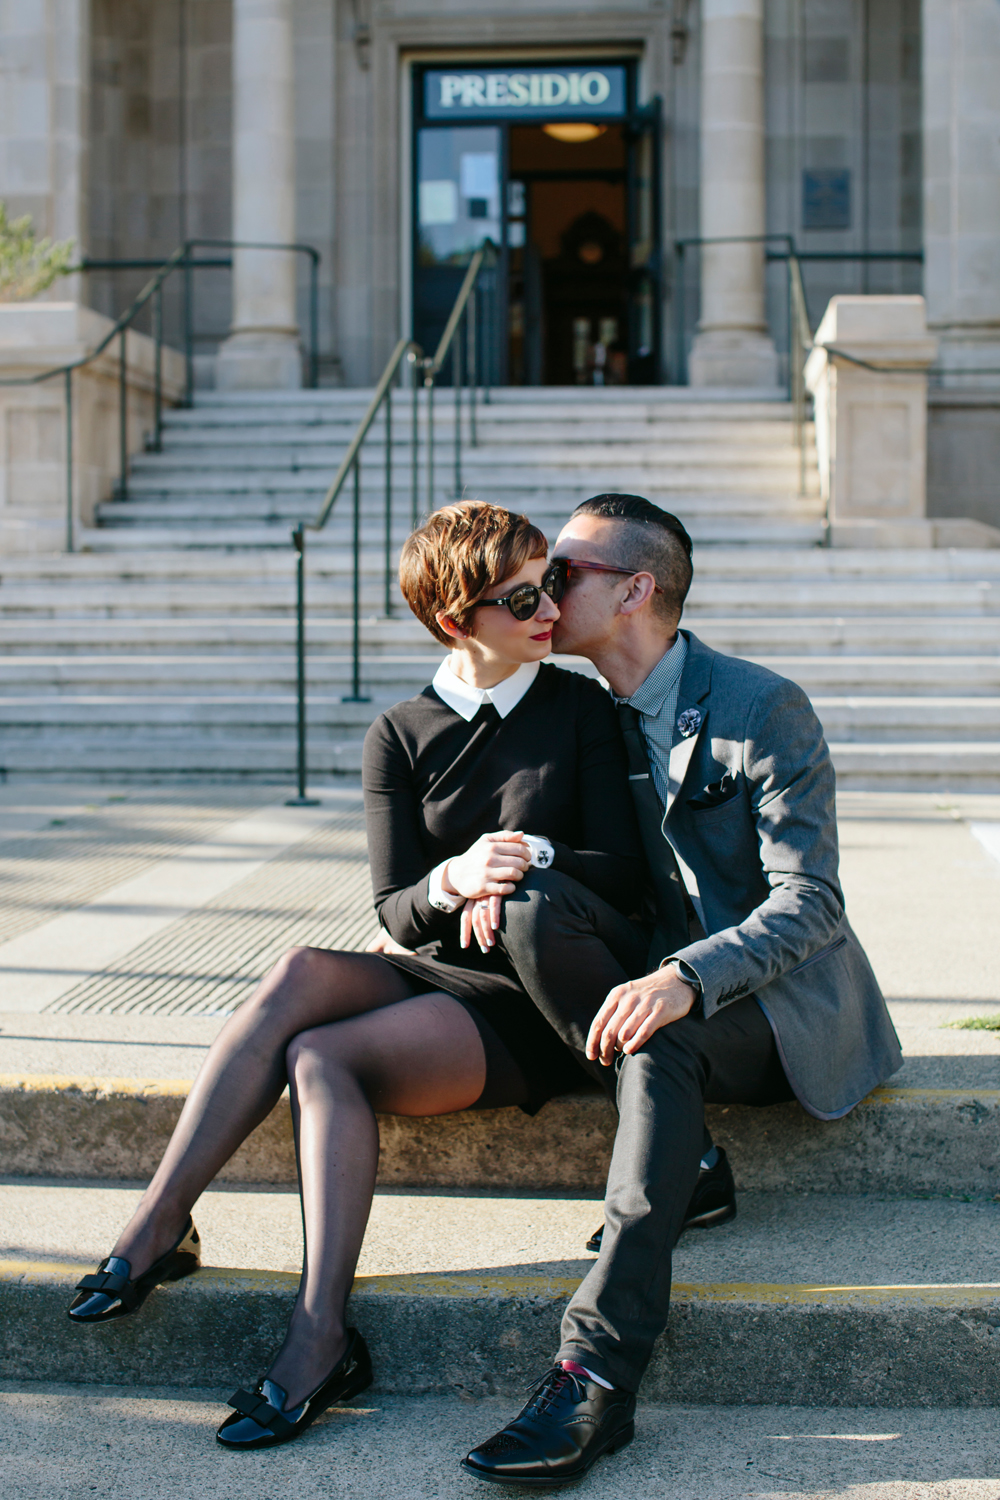 san-francisco-presidio-library-engagement-photography-lilouette-03.jpg